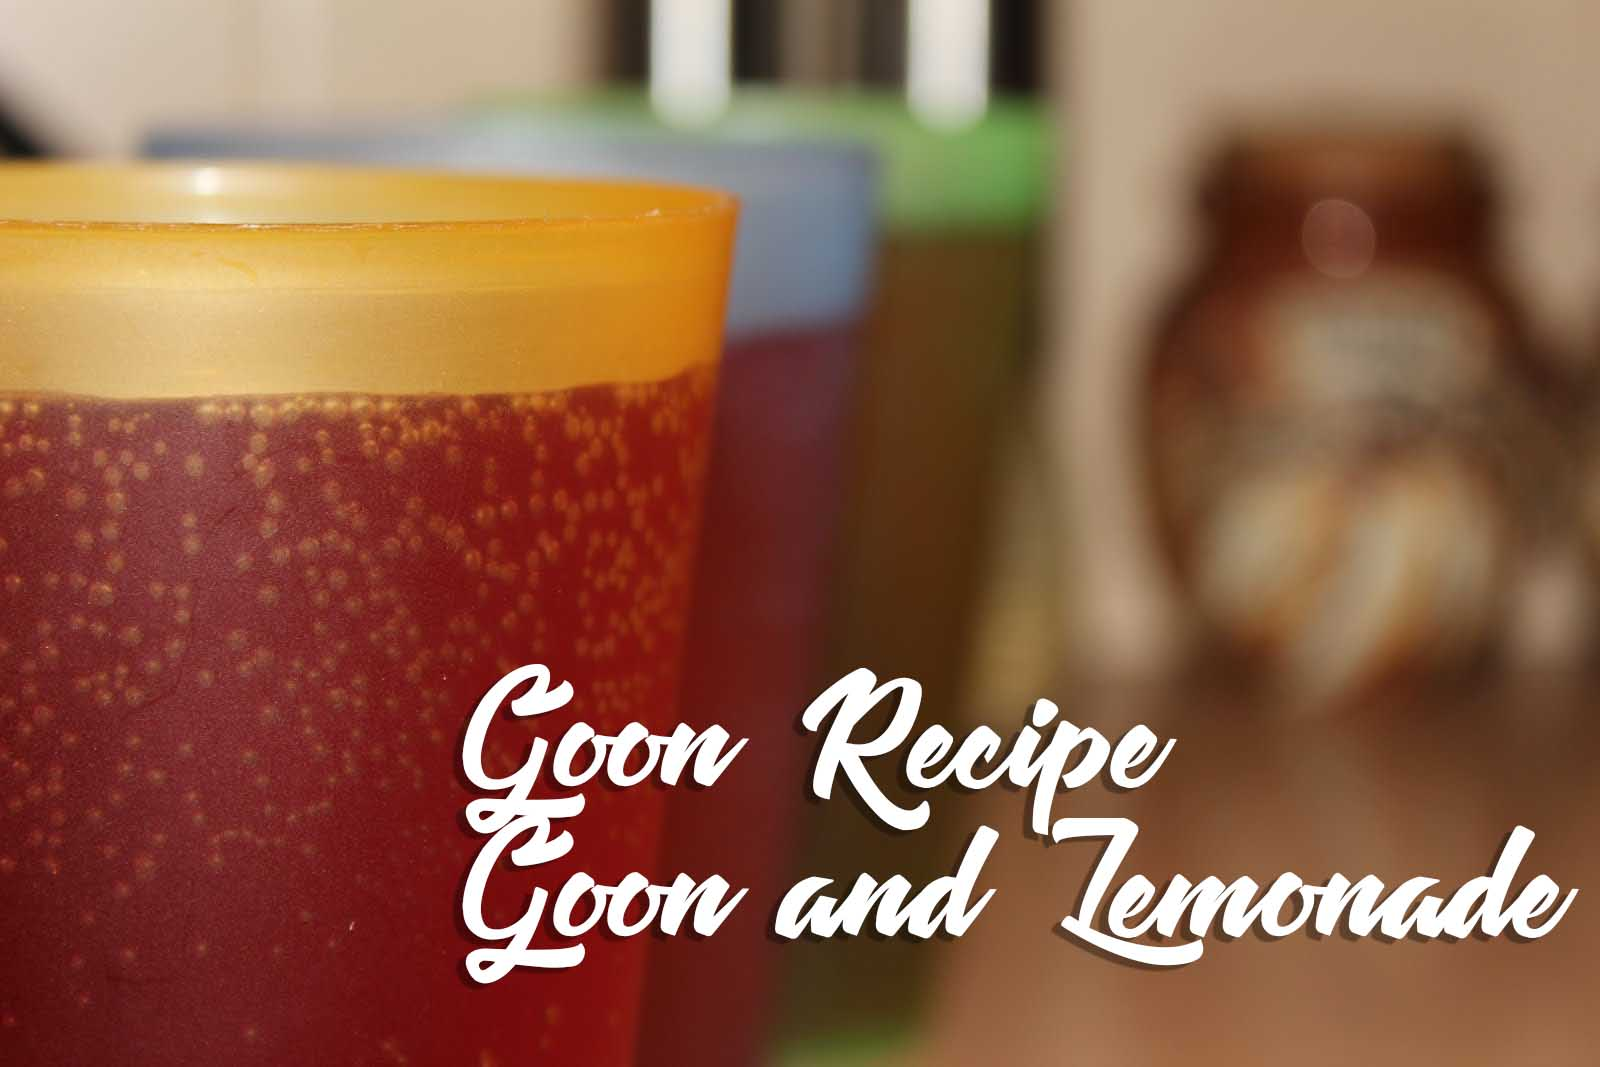 Goon_and_Lemonade_Goon_Recipe